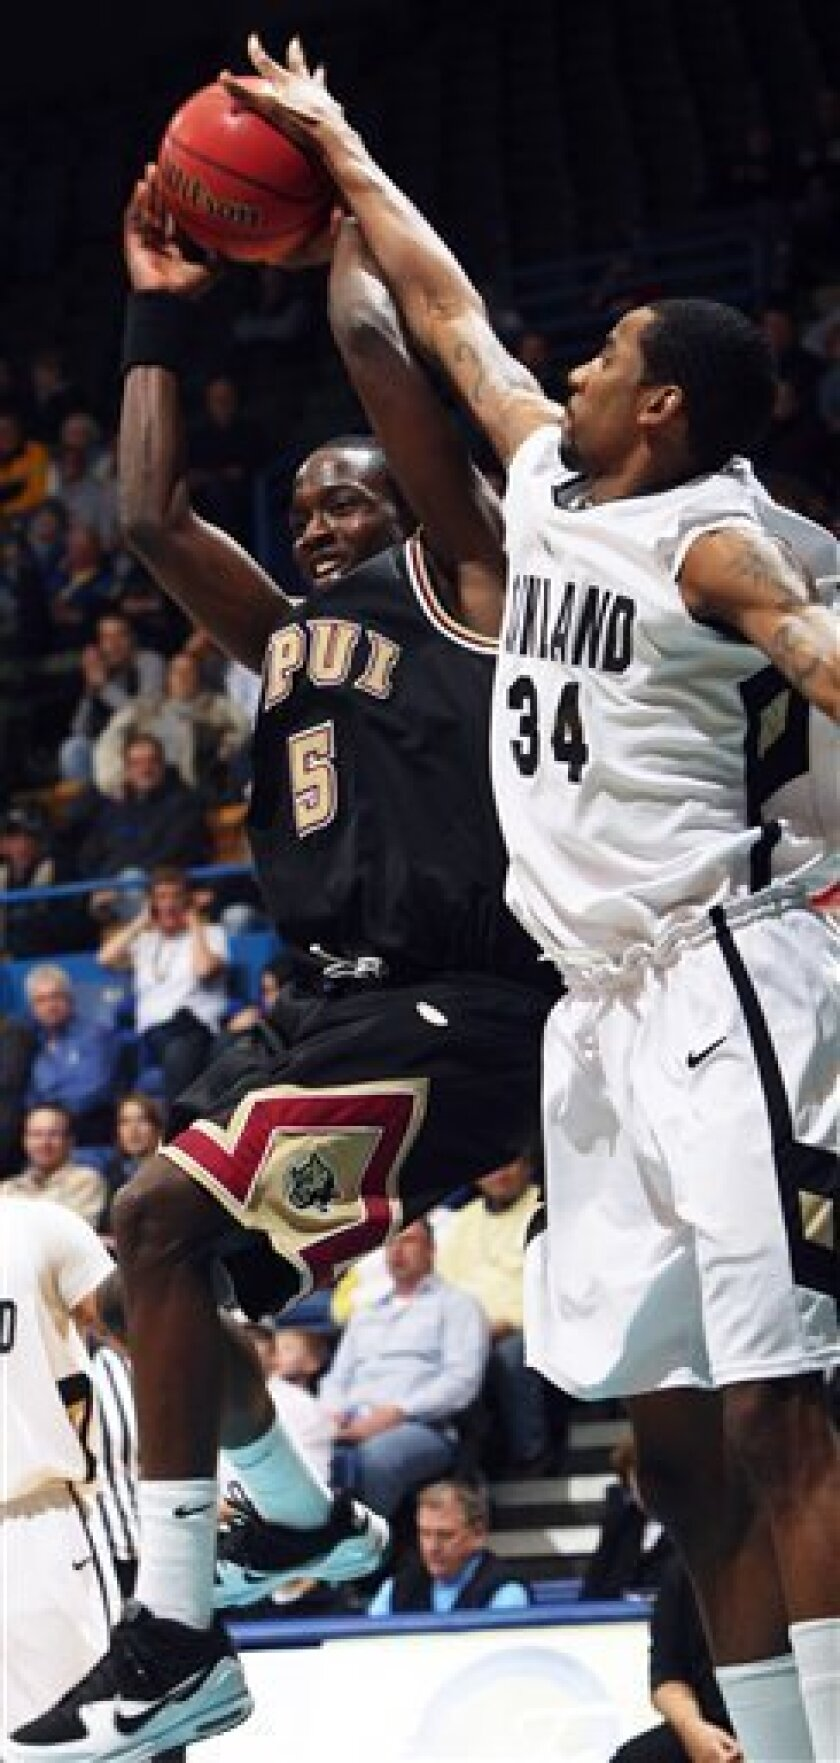 Oakland's Keith Benson blocks a shot attempt by IUPUI's Alex Young during the Summit League mens' championship NCAA college basketball game in Sioux Falls, S.D. at the Sioux Falls Arena on Tuesday, March 9, 2010. (AP Photo/Eric Landwehr)